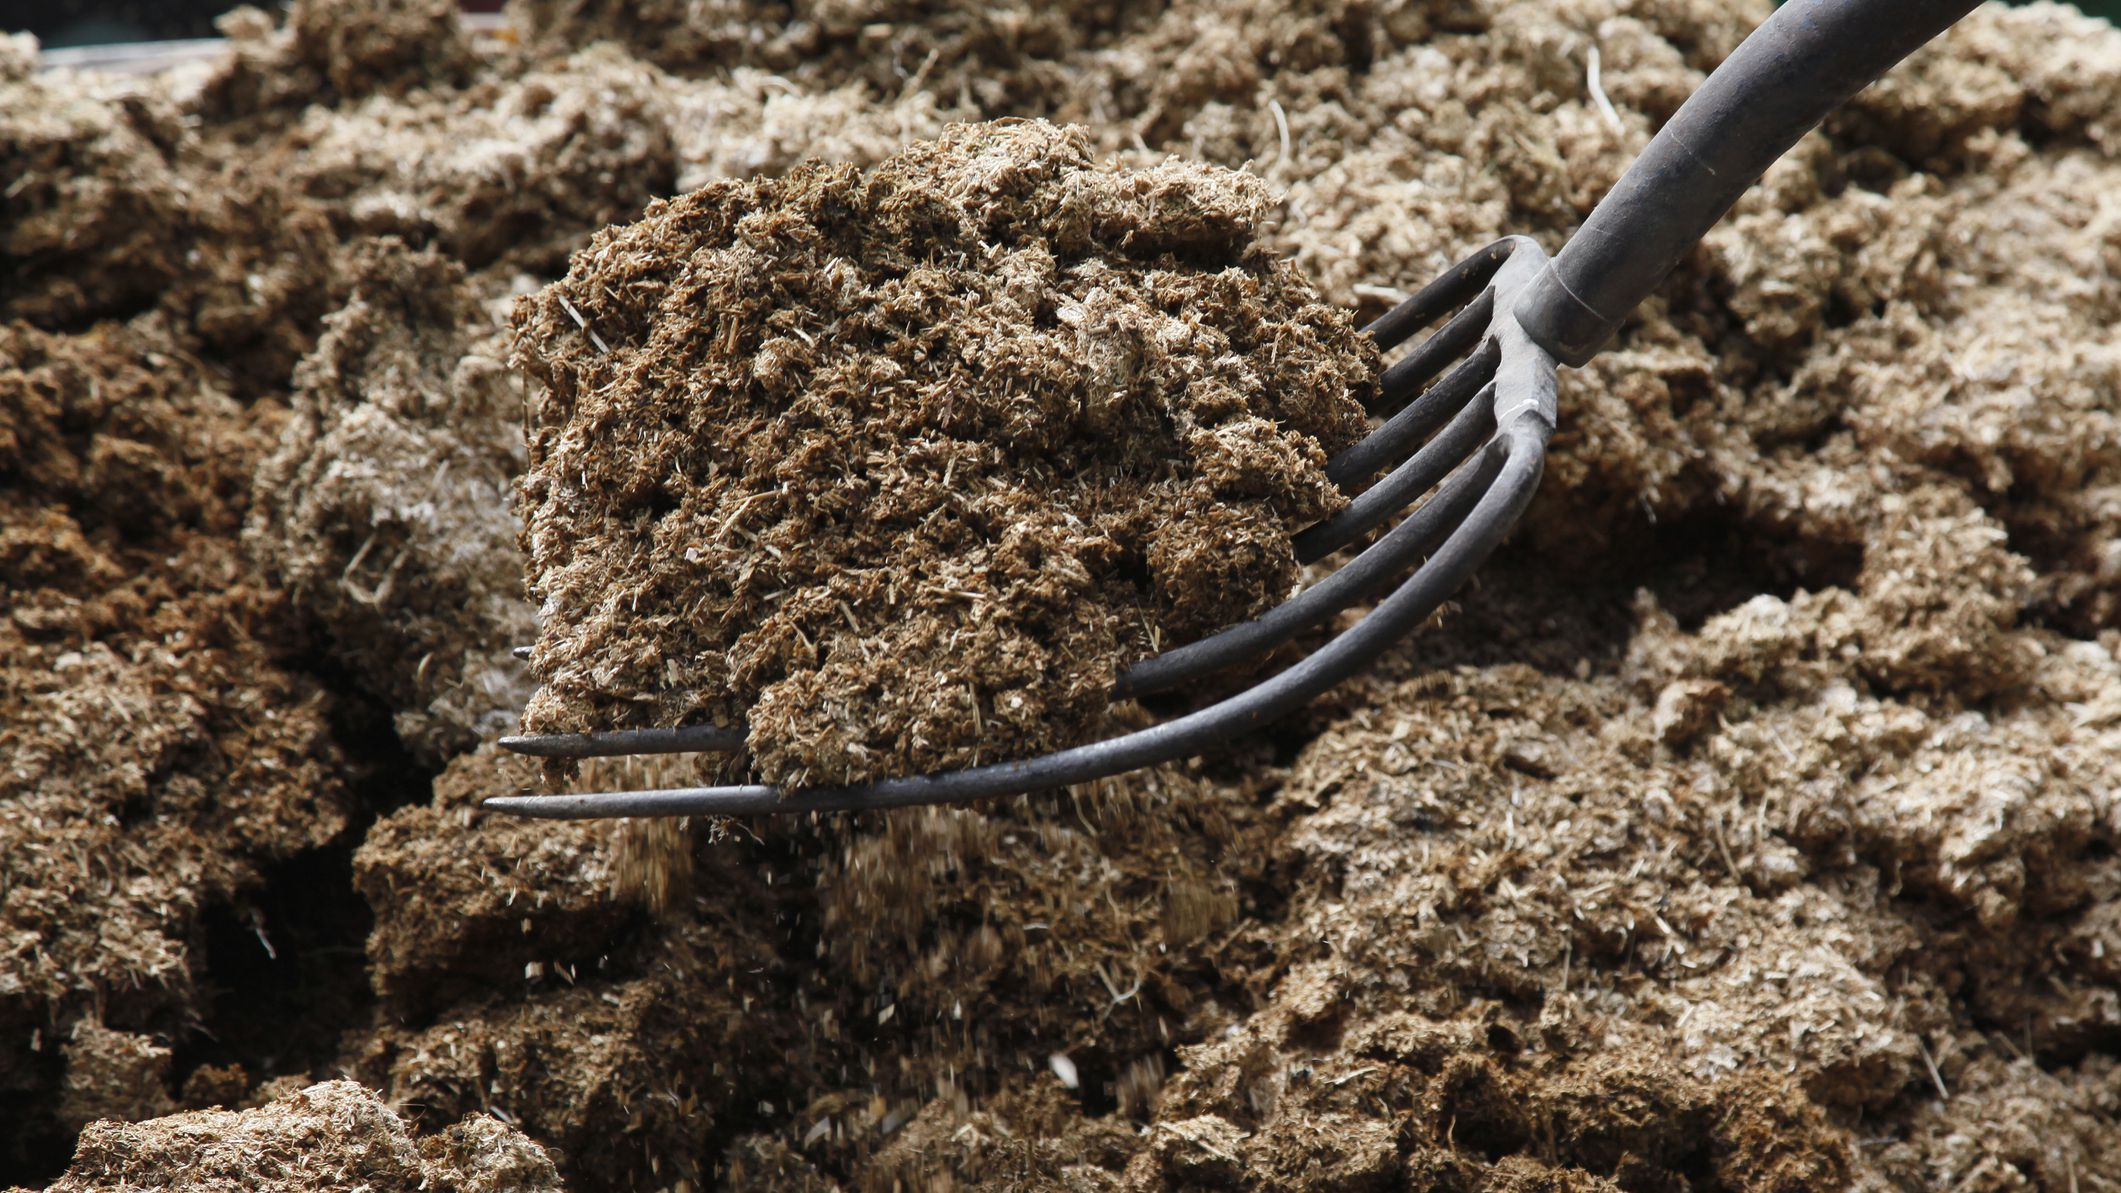 Should You Add Manure to Improve Garden Soil?